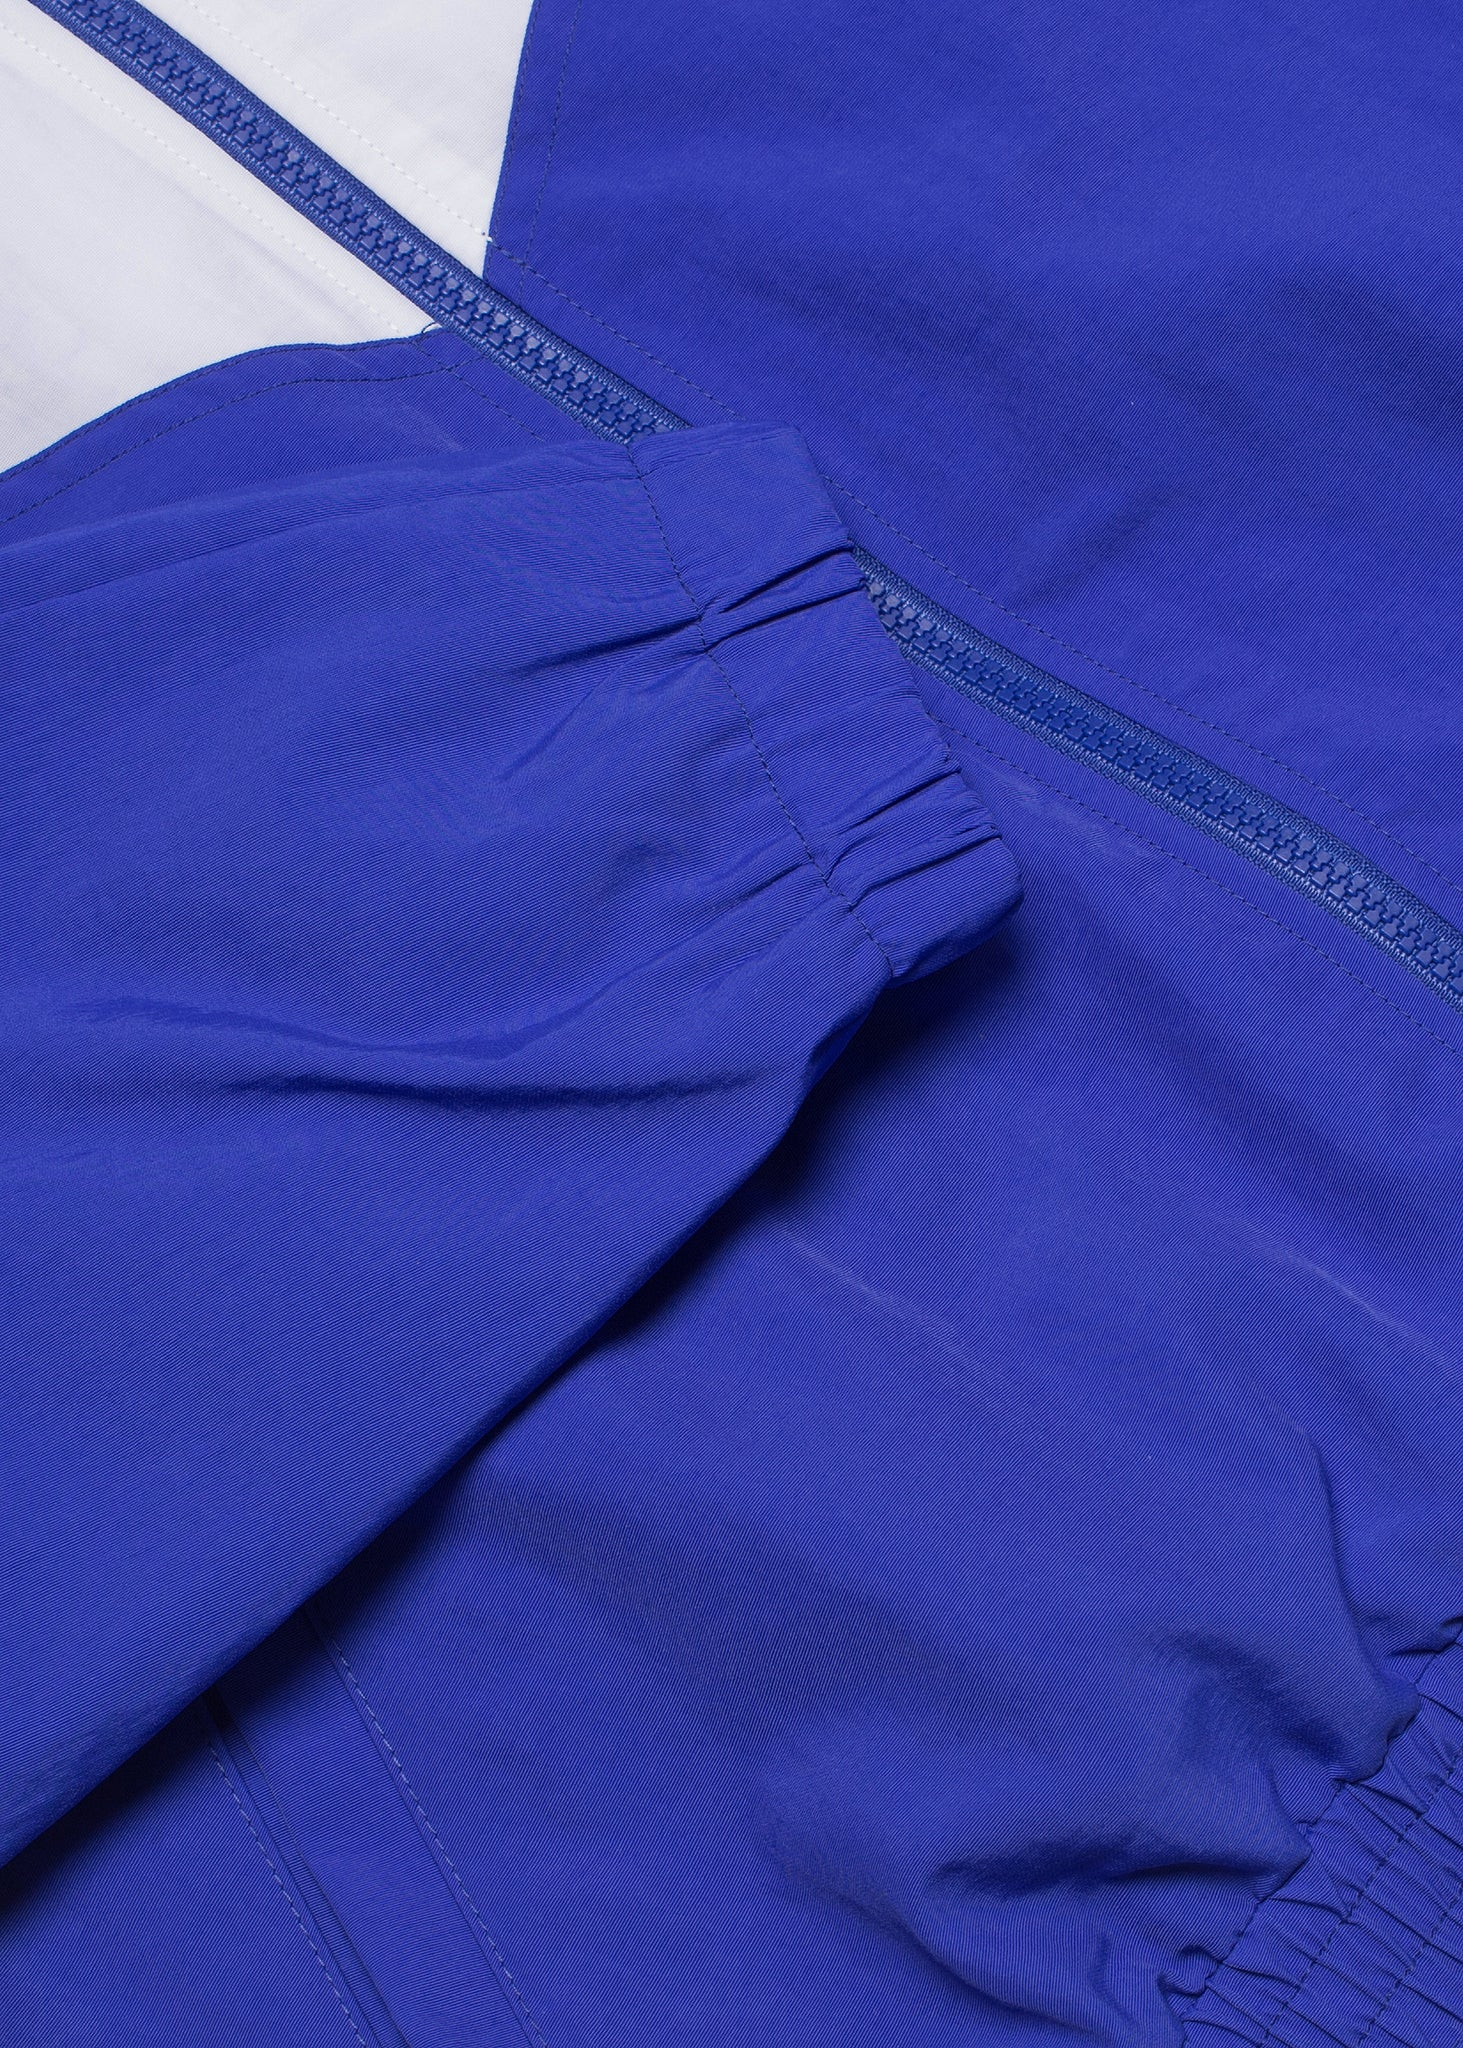 Mall Jogger Jacket - Blue